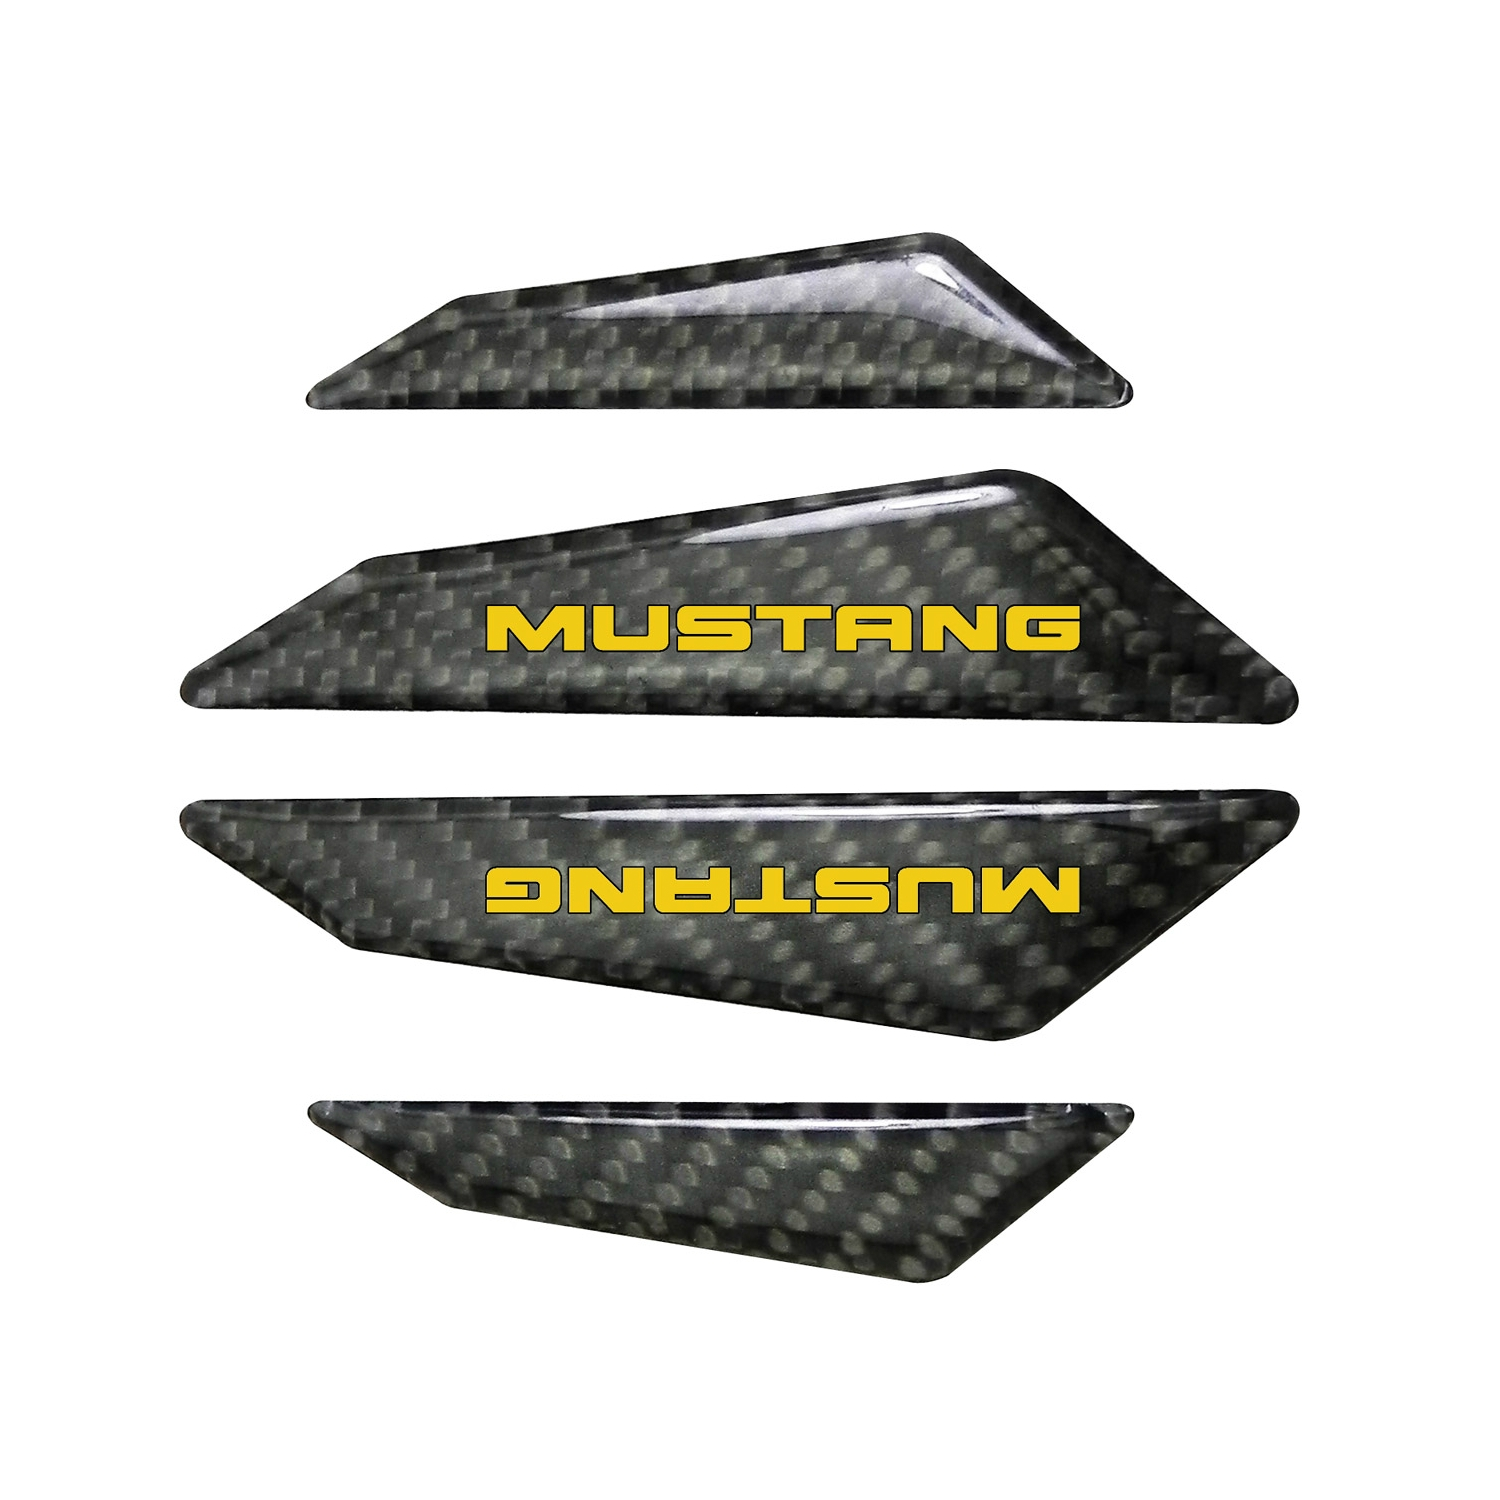 Ford Mustang in Yellow Real Black Carbon Fiber Door Edge Guard Decal